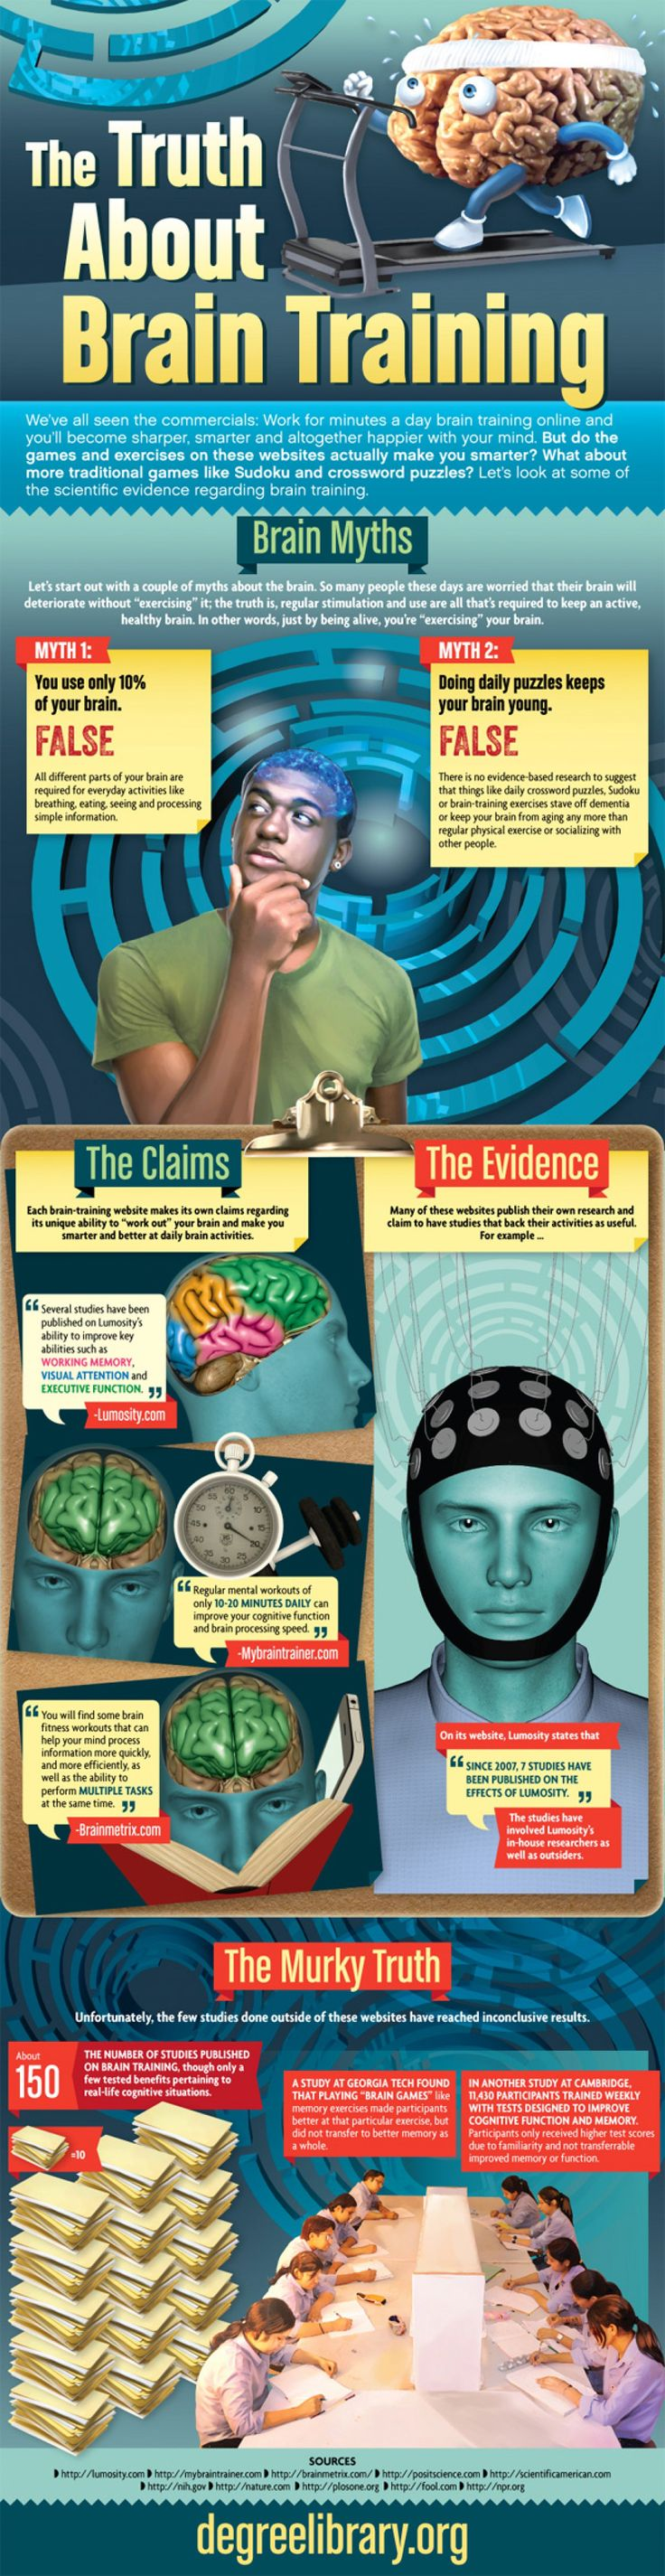 The Truth About Brain Training -We all know that our memories become hazier as we age, and the newest cure is brain training: games and puzzles that are rumored to help keep your brain in tip-top shape – or even improve it. But is... -shared by christopherpnauman on Mar 12, 2014  - See more at: http://visual.ly/truth-about-brain-training#sthash.nuN3KQ9o.dpuf